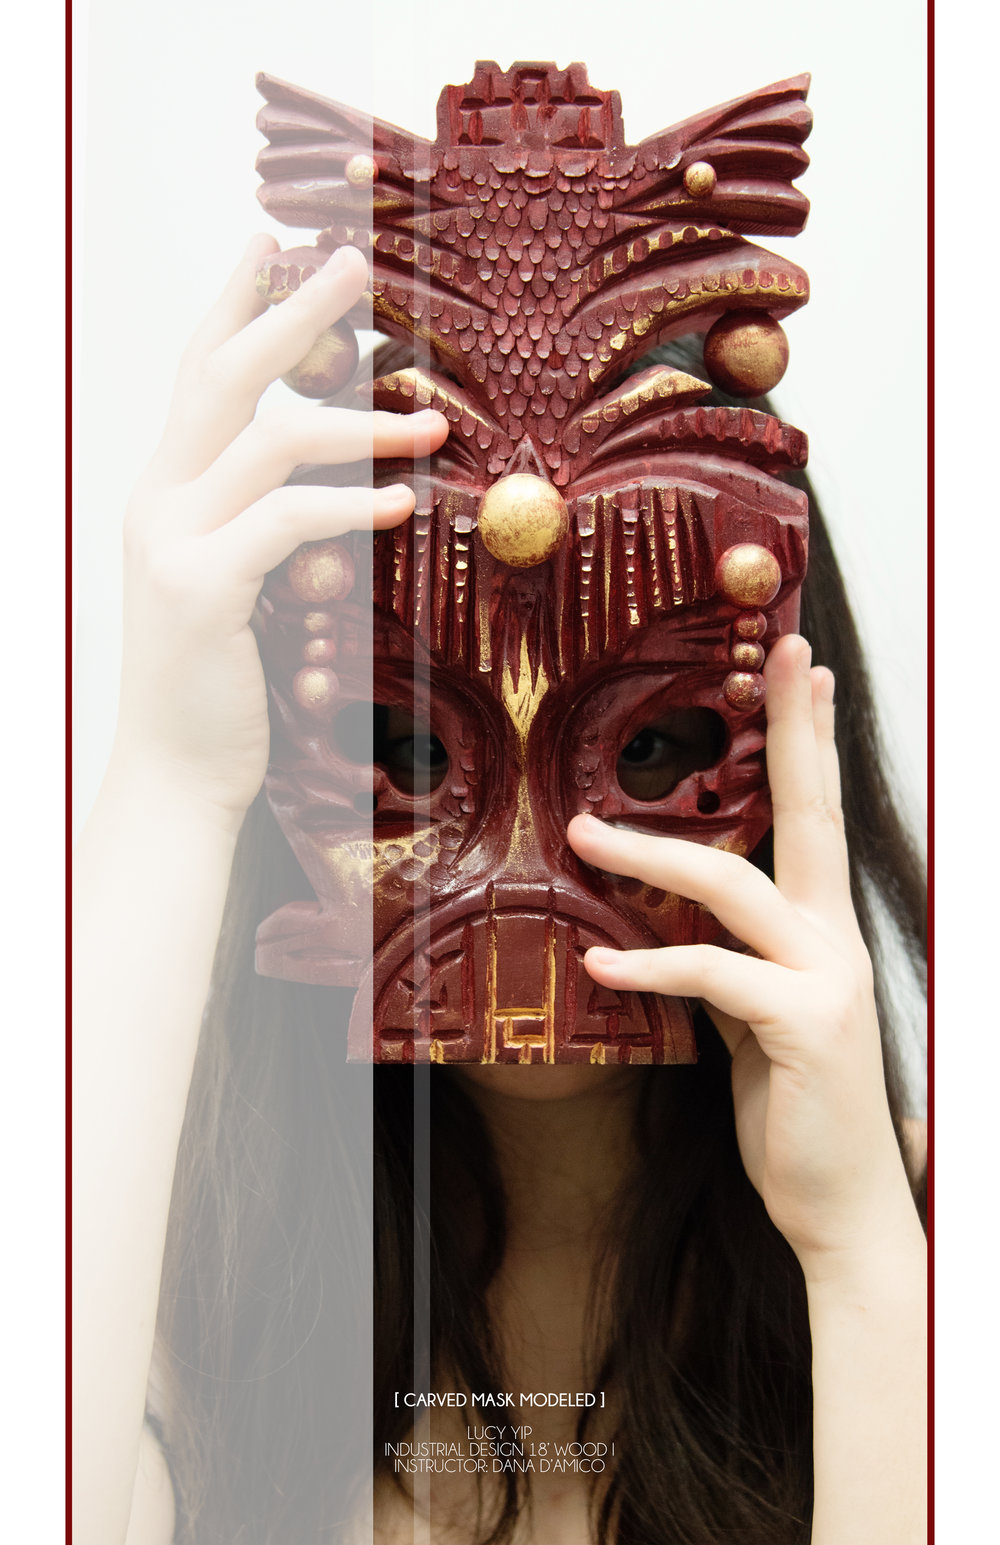 2015FA.Wood I.Carved Mask Modeled.Yip_Lucy.jpg